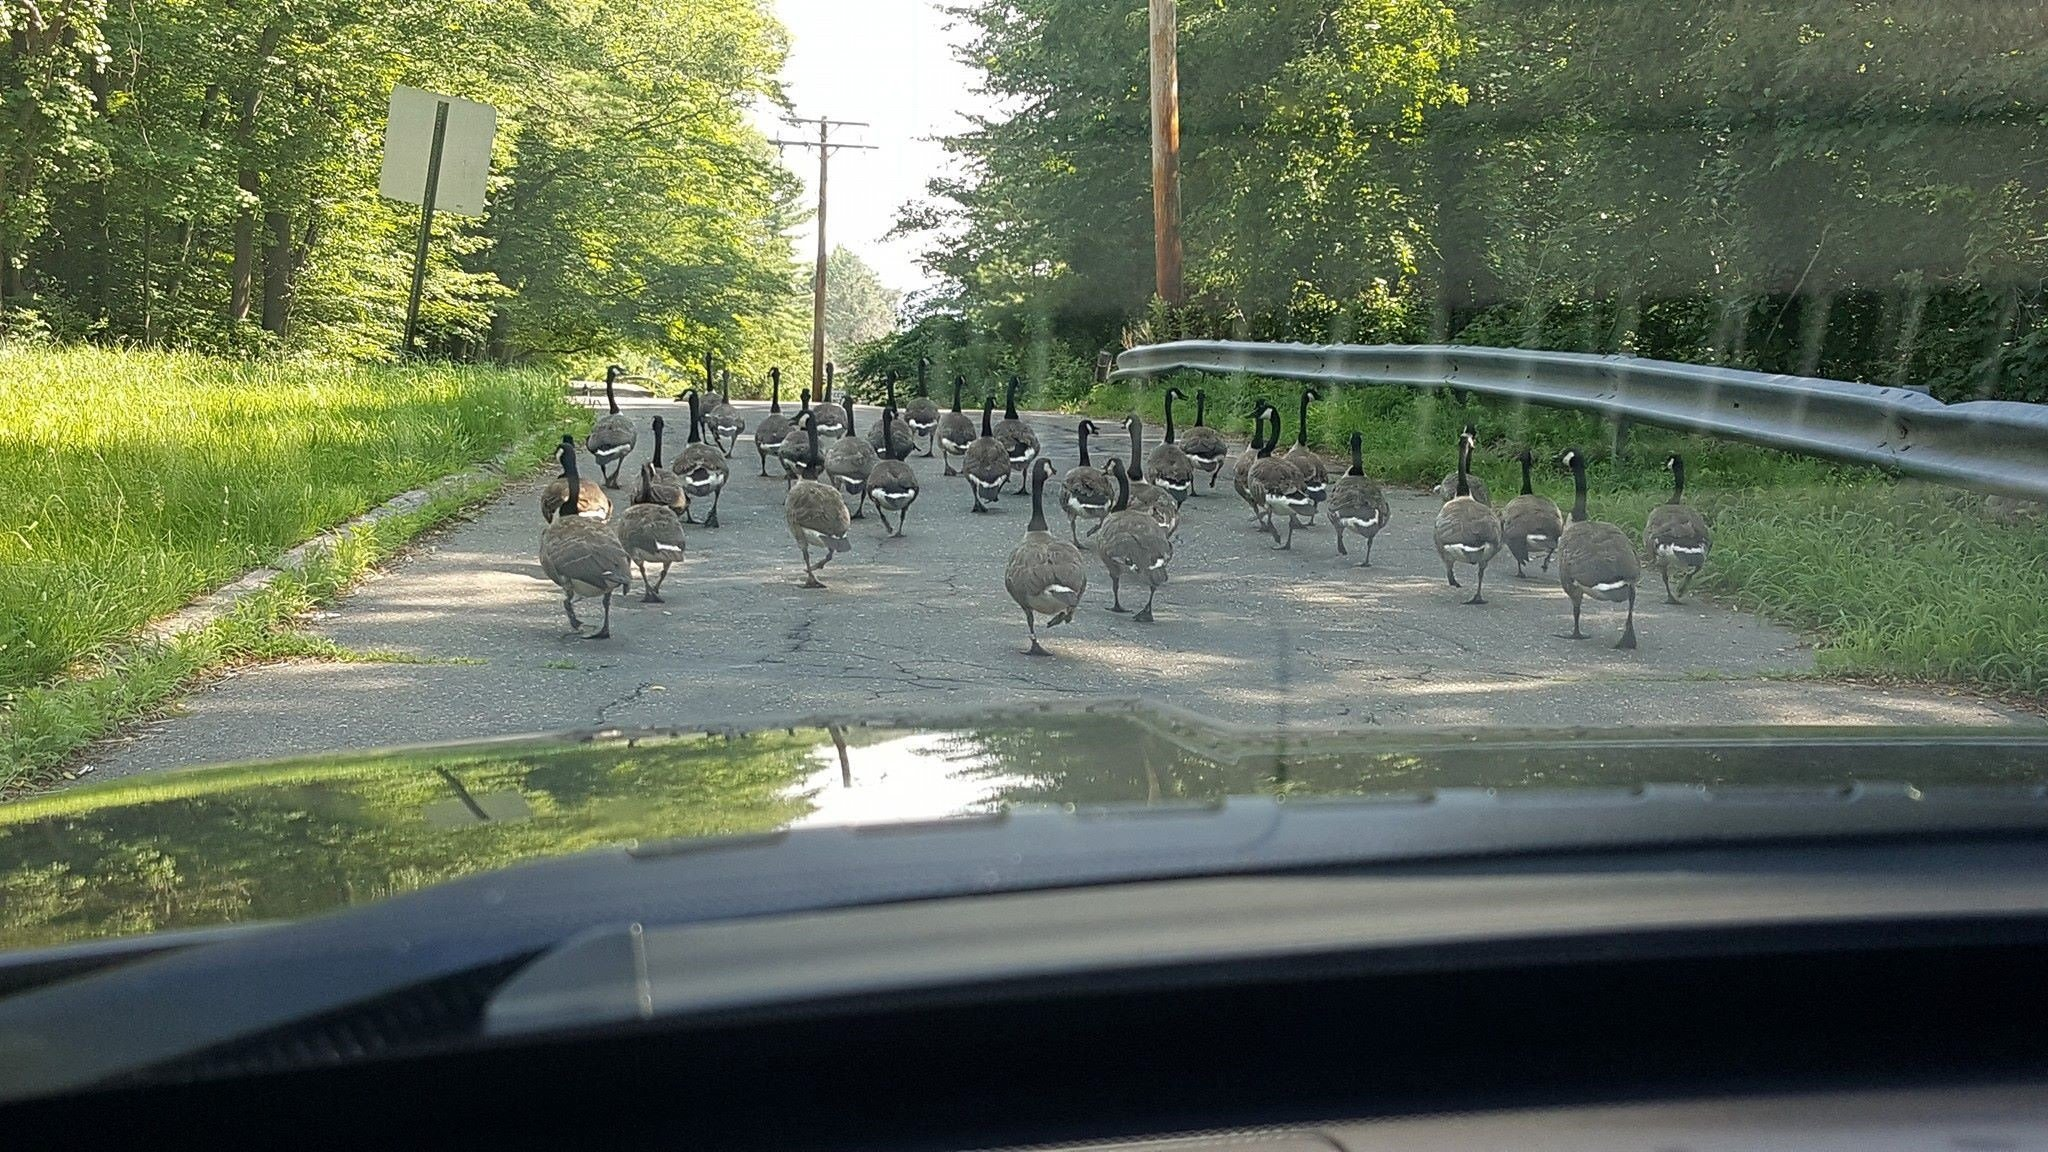 A flock of geese received a police escort in Woodbridge on Thursday. (Woodbridge police)